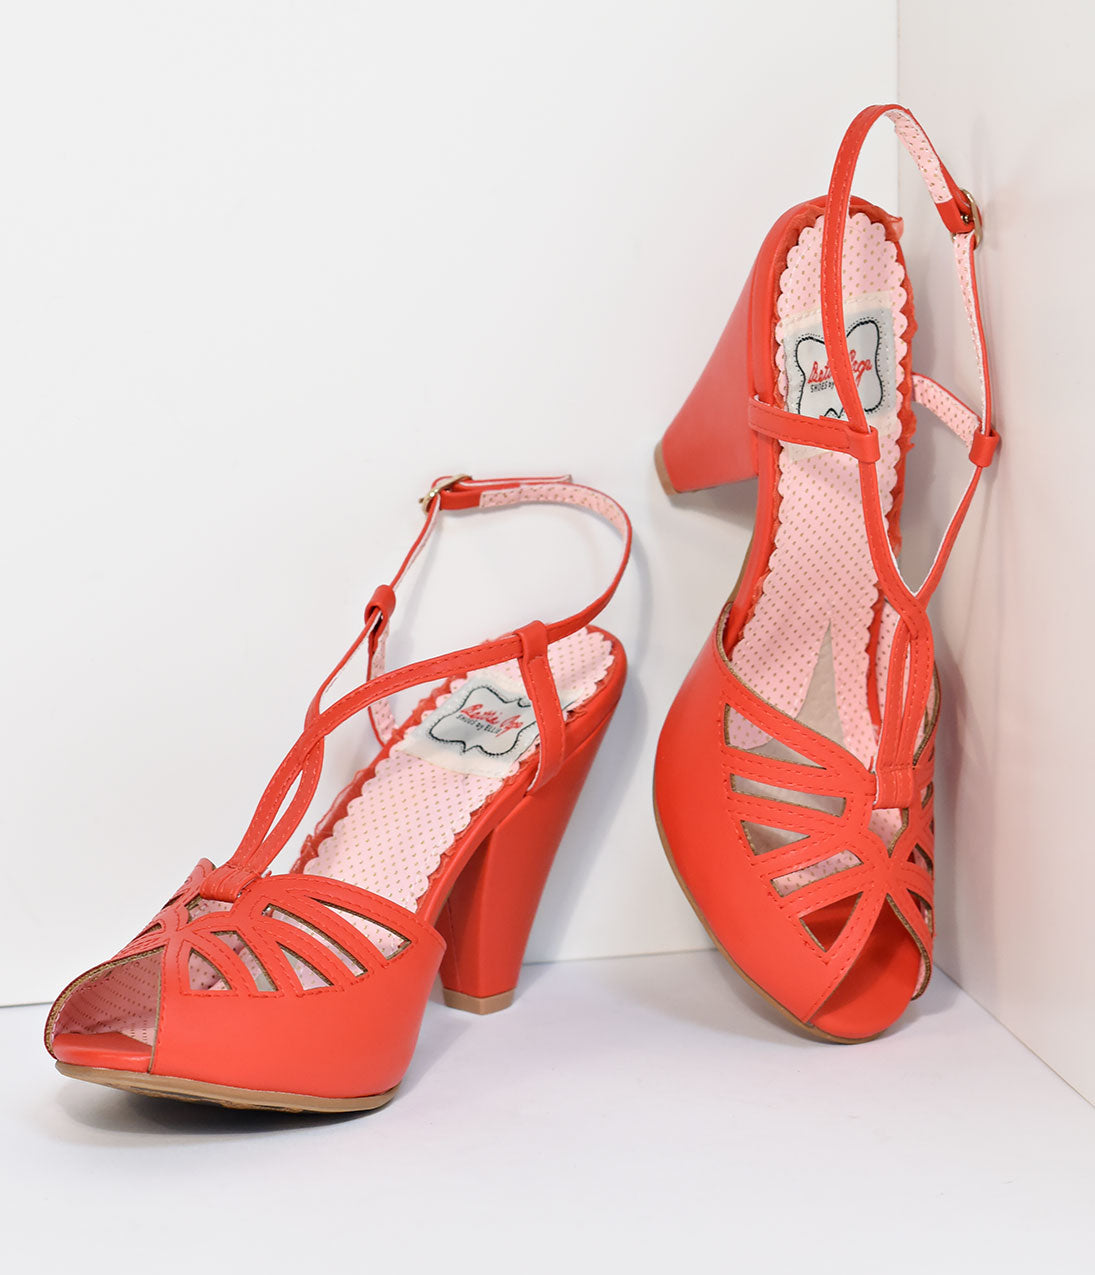 Rockabilly Shoes- Heels, Pumps, Boots, Flats Bettie Page Red Slingback Cut-Out Aria Heels $76.00 AT vintagedancer.com